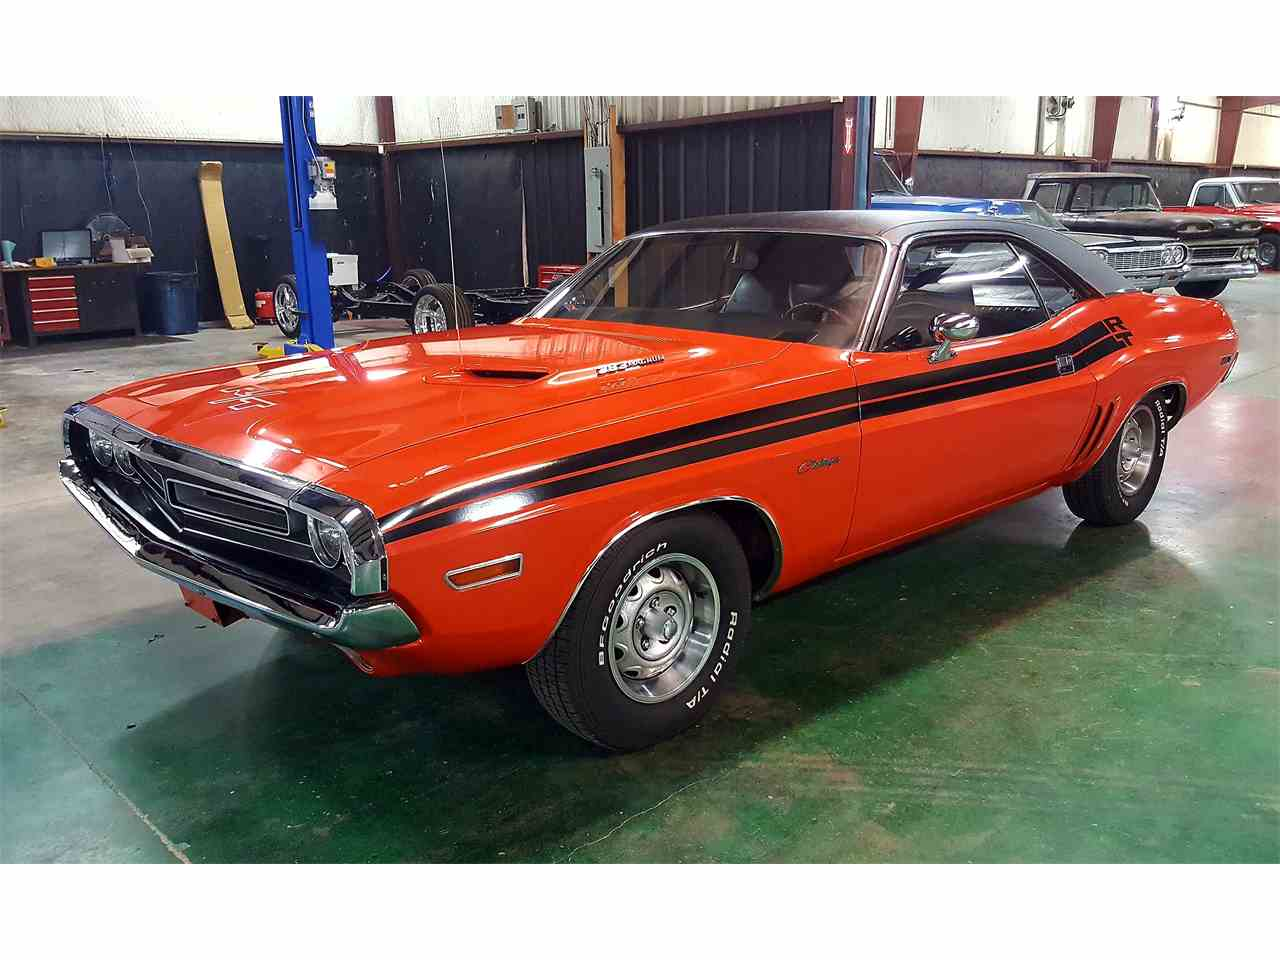 sale challenger news of rt classifieds cars hemmings motor for dodge